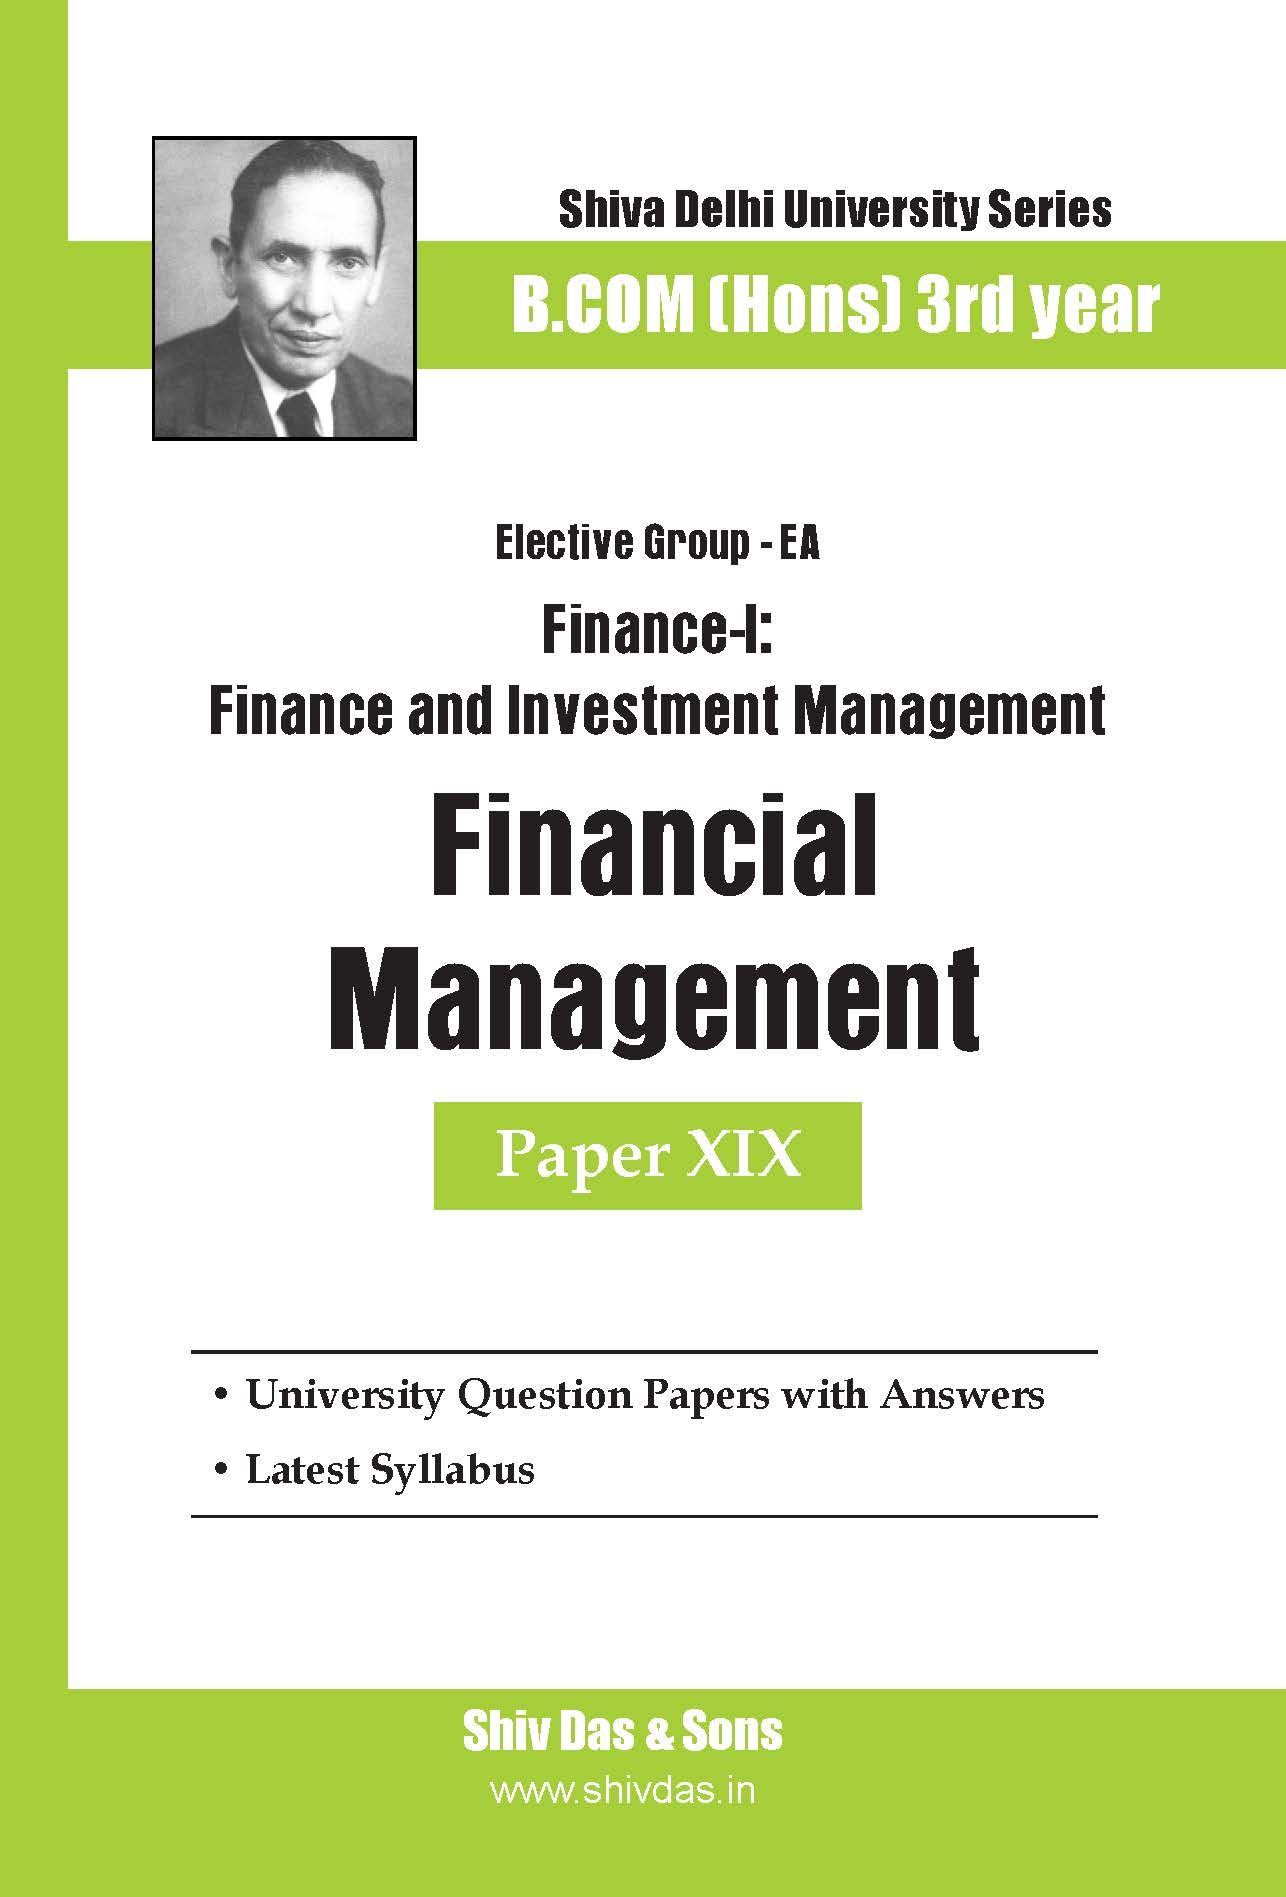 B.Com Hons-SOL/External-3rd Year-Financial Management-Shiv Das-Delhi University Series